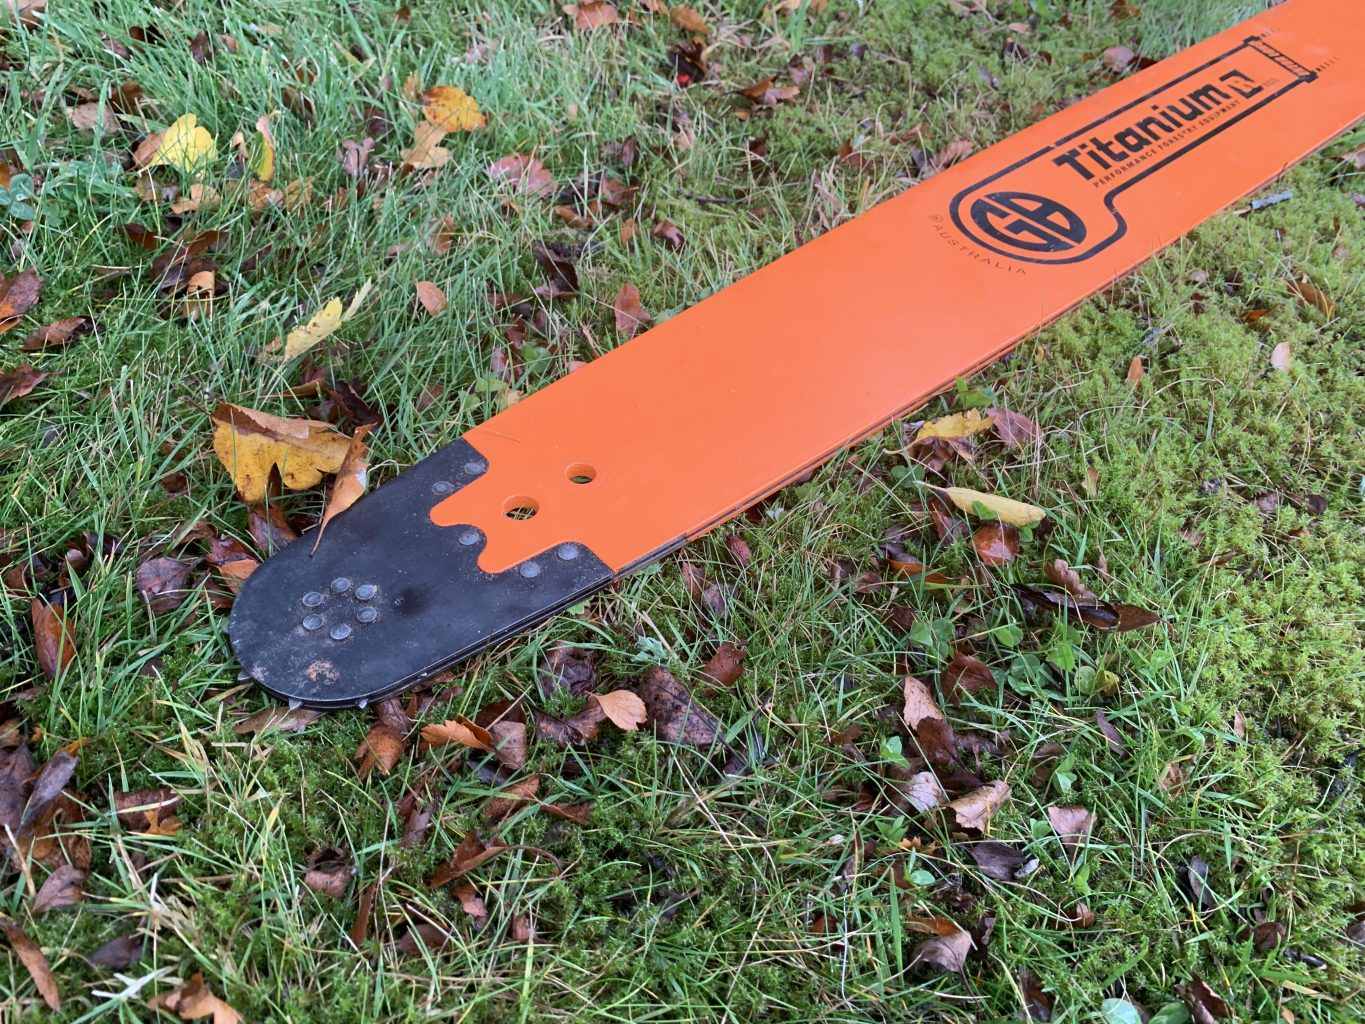 """HSS64-63RQ 64""""[162cm] GB Slotted Extra Long 5 Foot Bar For Stihl 050, 051, 070, 075, 076, 08, 090, 084, 088, MS880 .404 .063 180 drive links"""